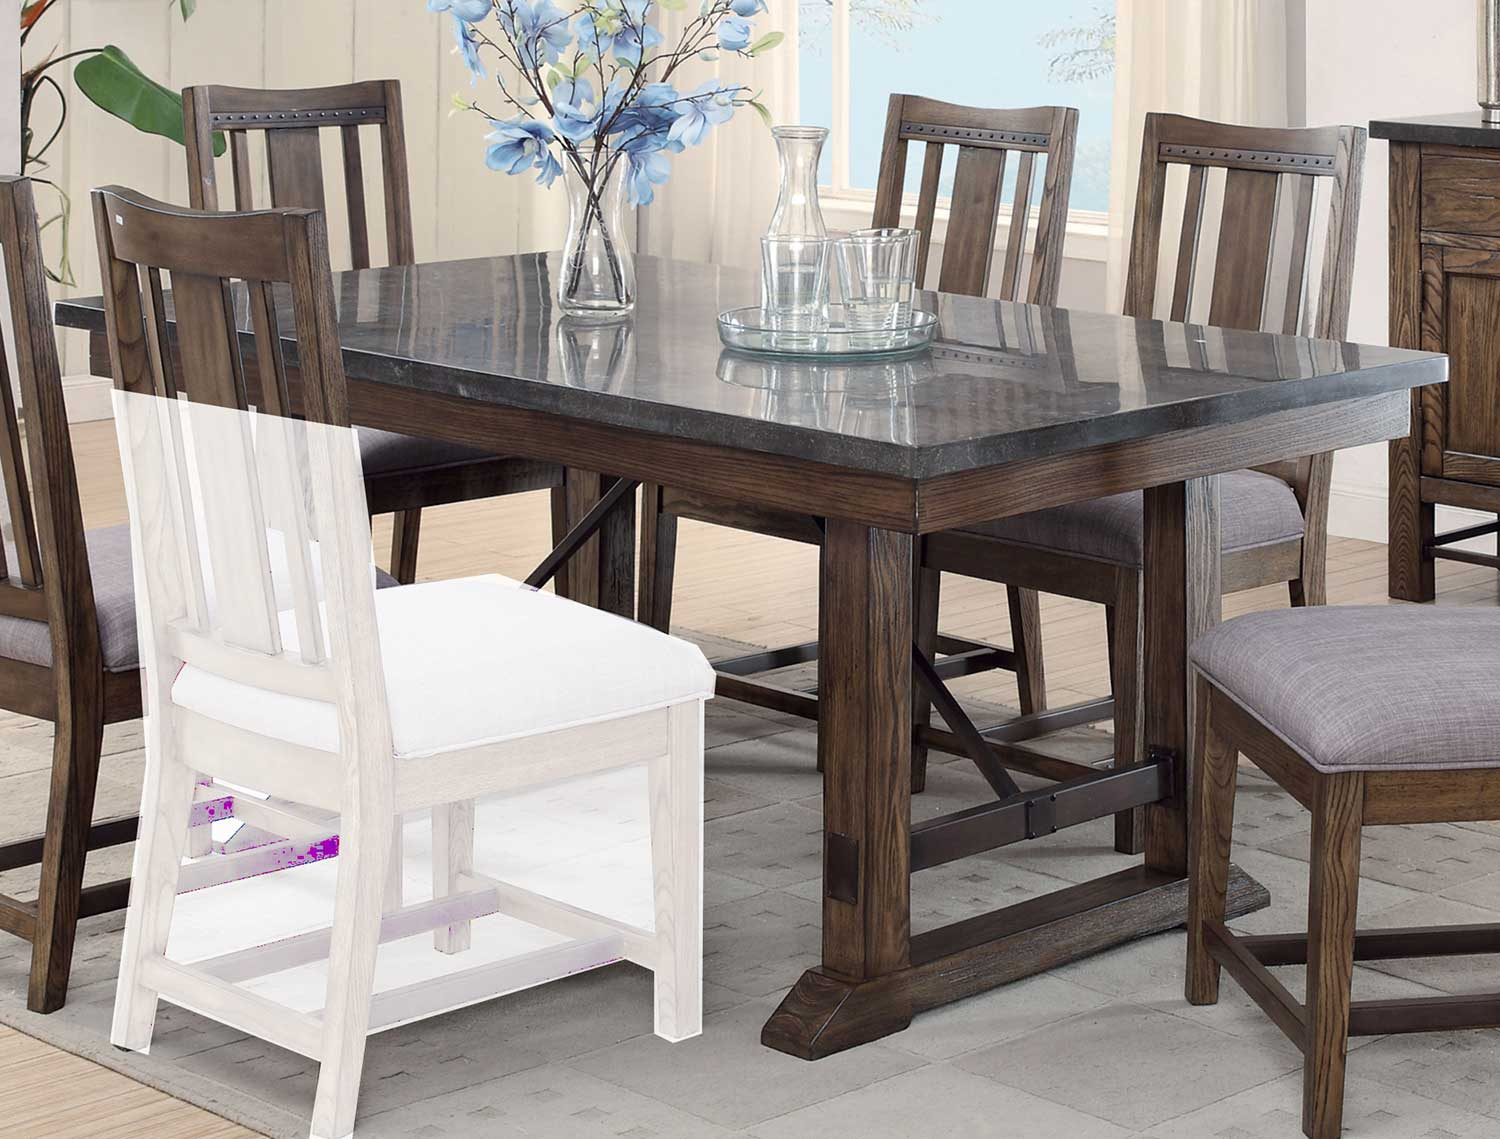 Coaster Willowbrook Rectangular Dining Table Rustic